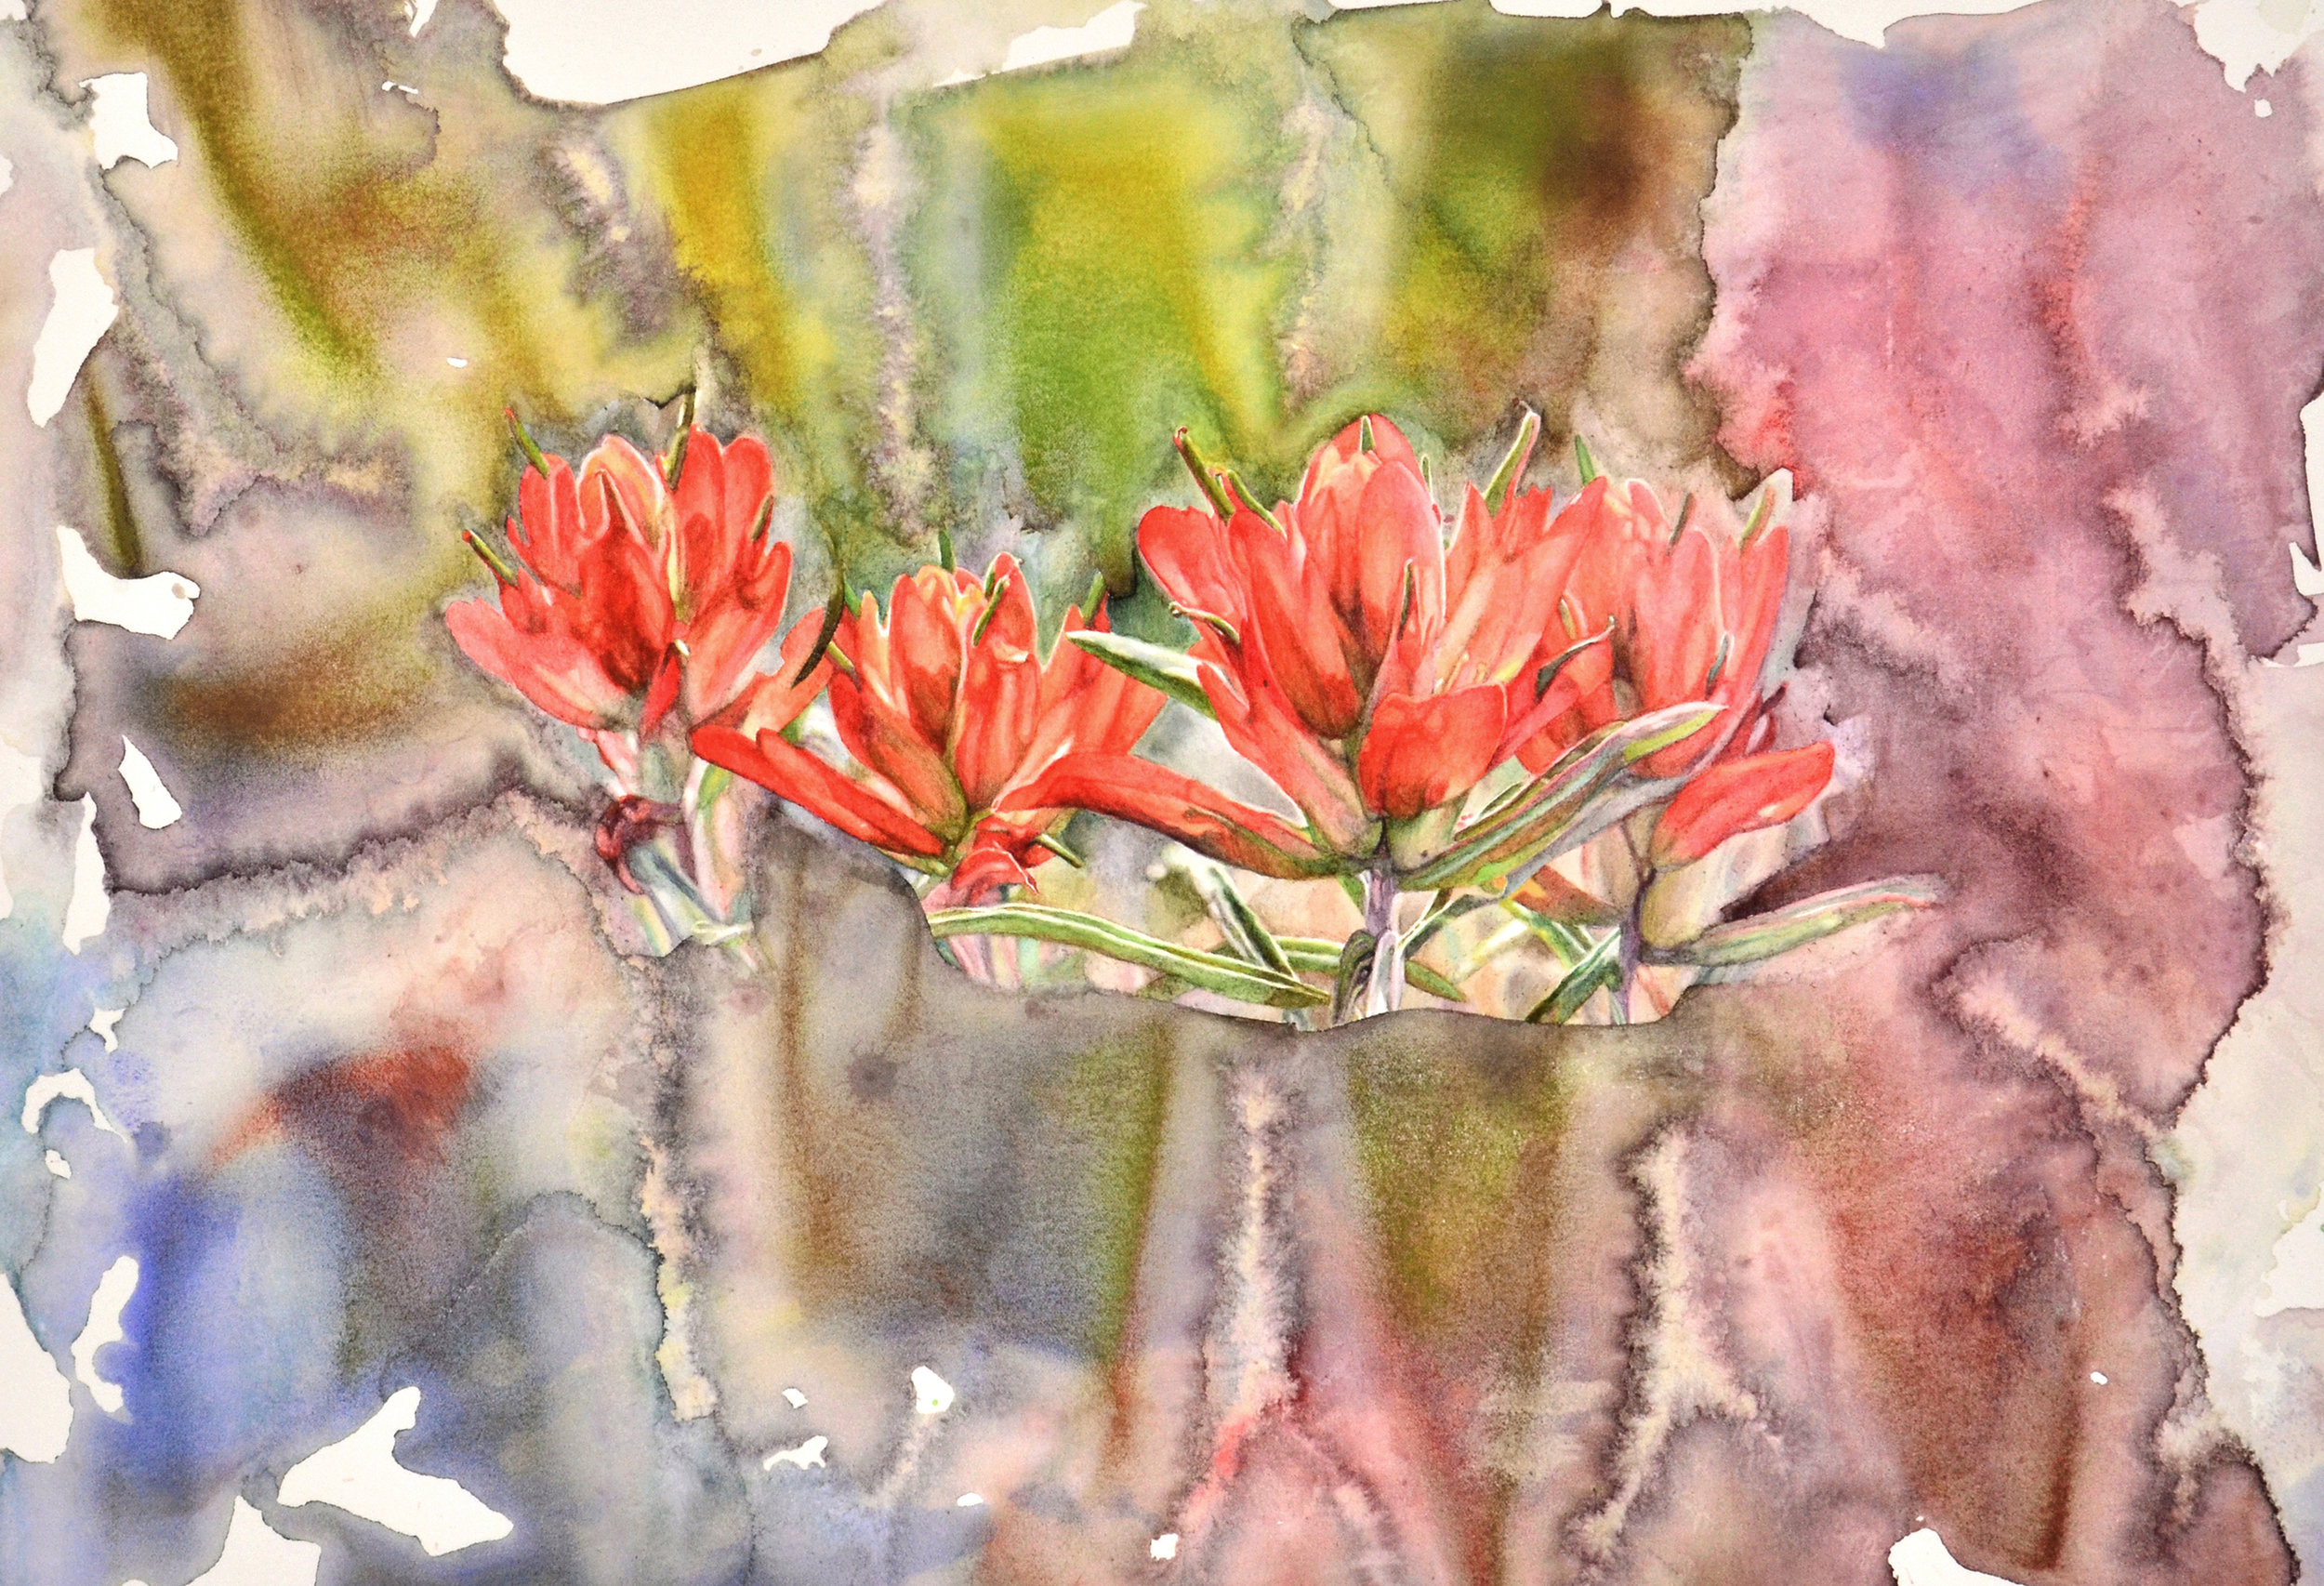 """Crimson Plume ( 18.5 x 26,"""" watercolor on paper)  features Colorado wildflower Castilleja, also known as Indian Paintbrush. This fire-tolerant plant can re-sprout from its rhizome (underground stem) and disperse its wind-carried seeds after a fire."""